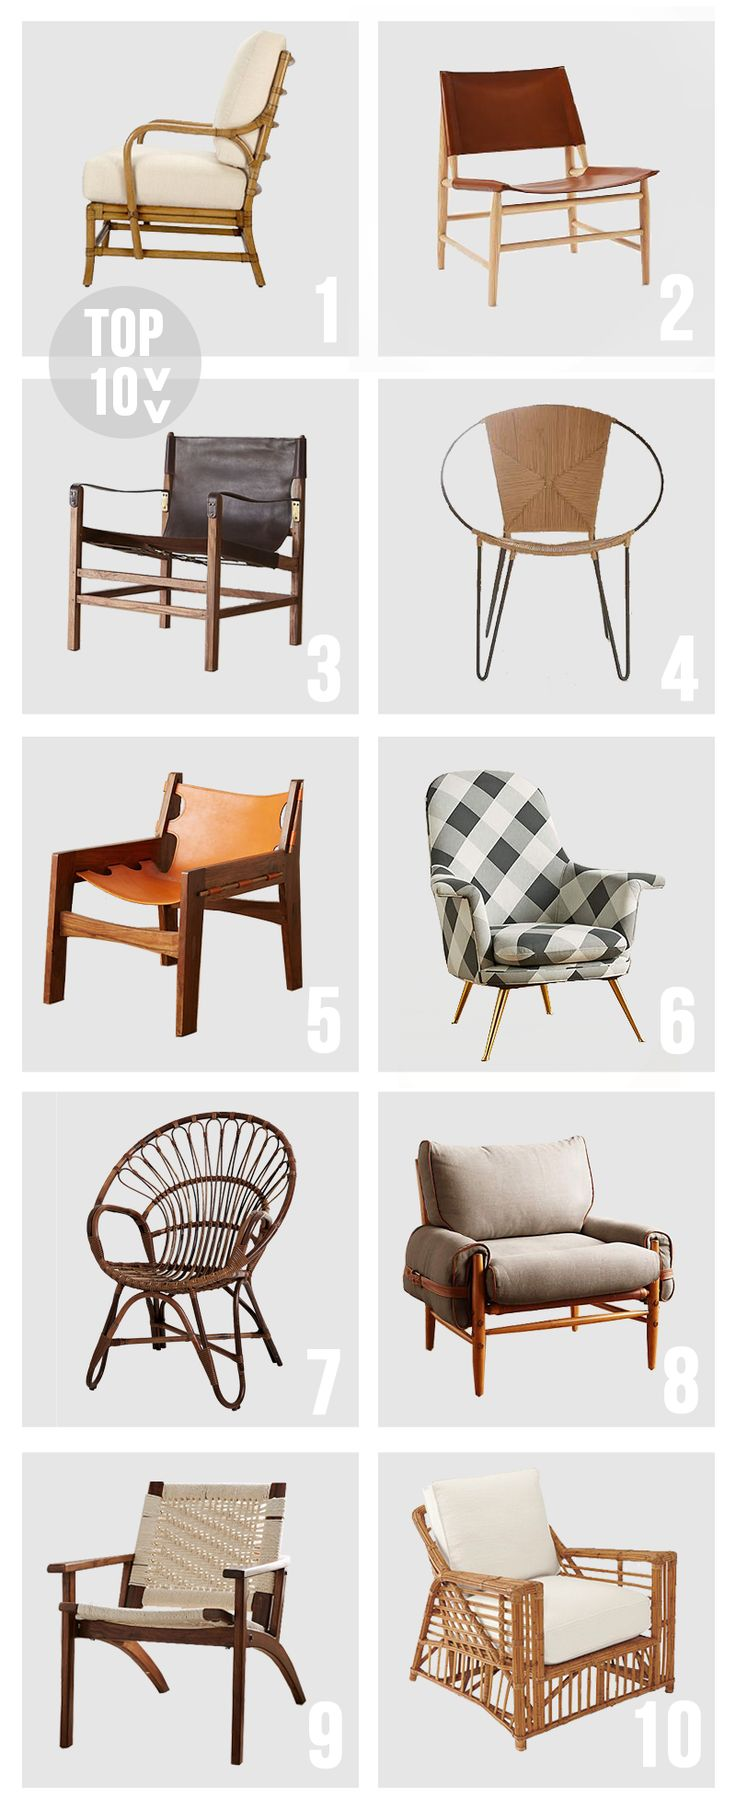 I Love Me Some Purrrrdy Accent Chairs Whether Theyre Rattan Leather Canvas YOU NAME IT Heres A List Of My Top Ten Favs Right Now